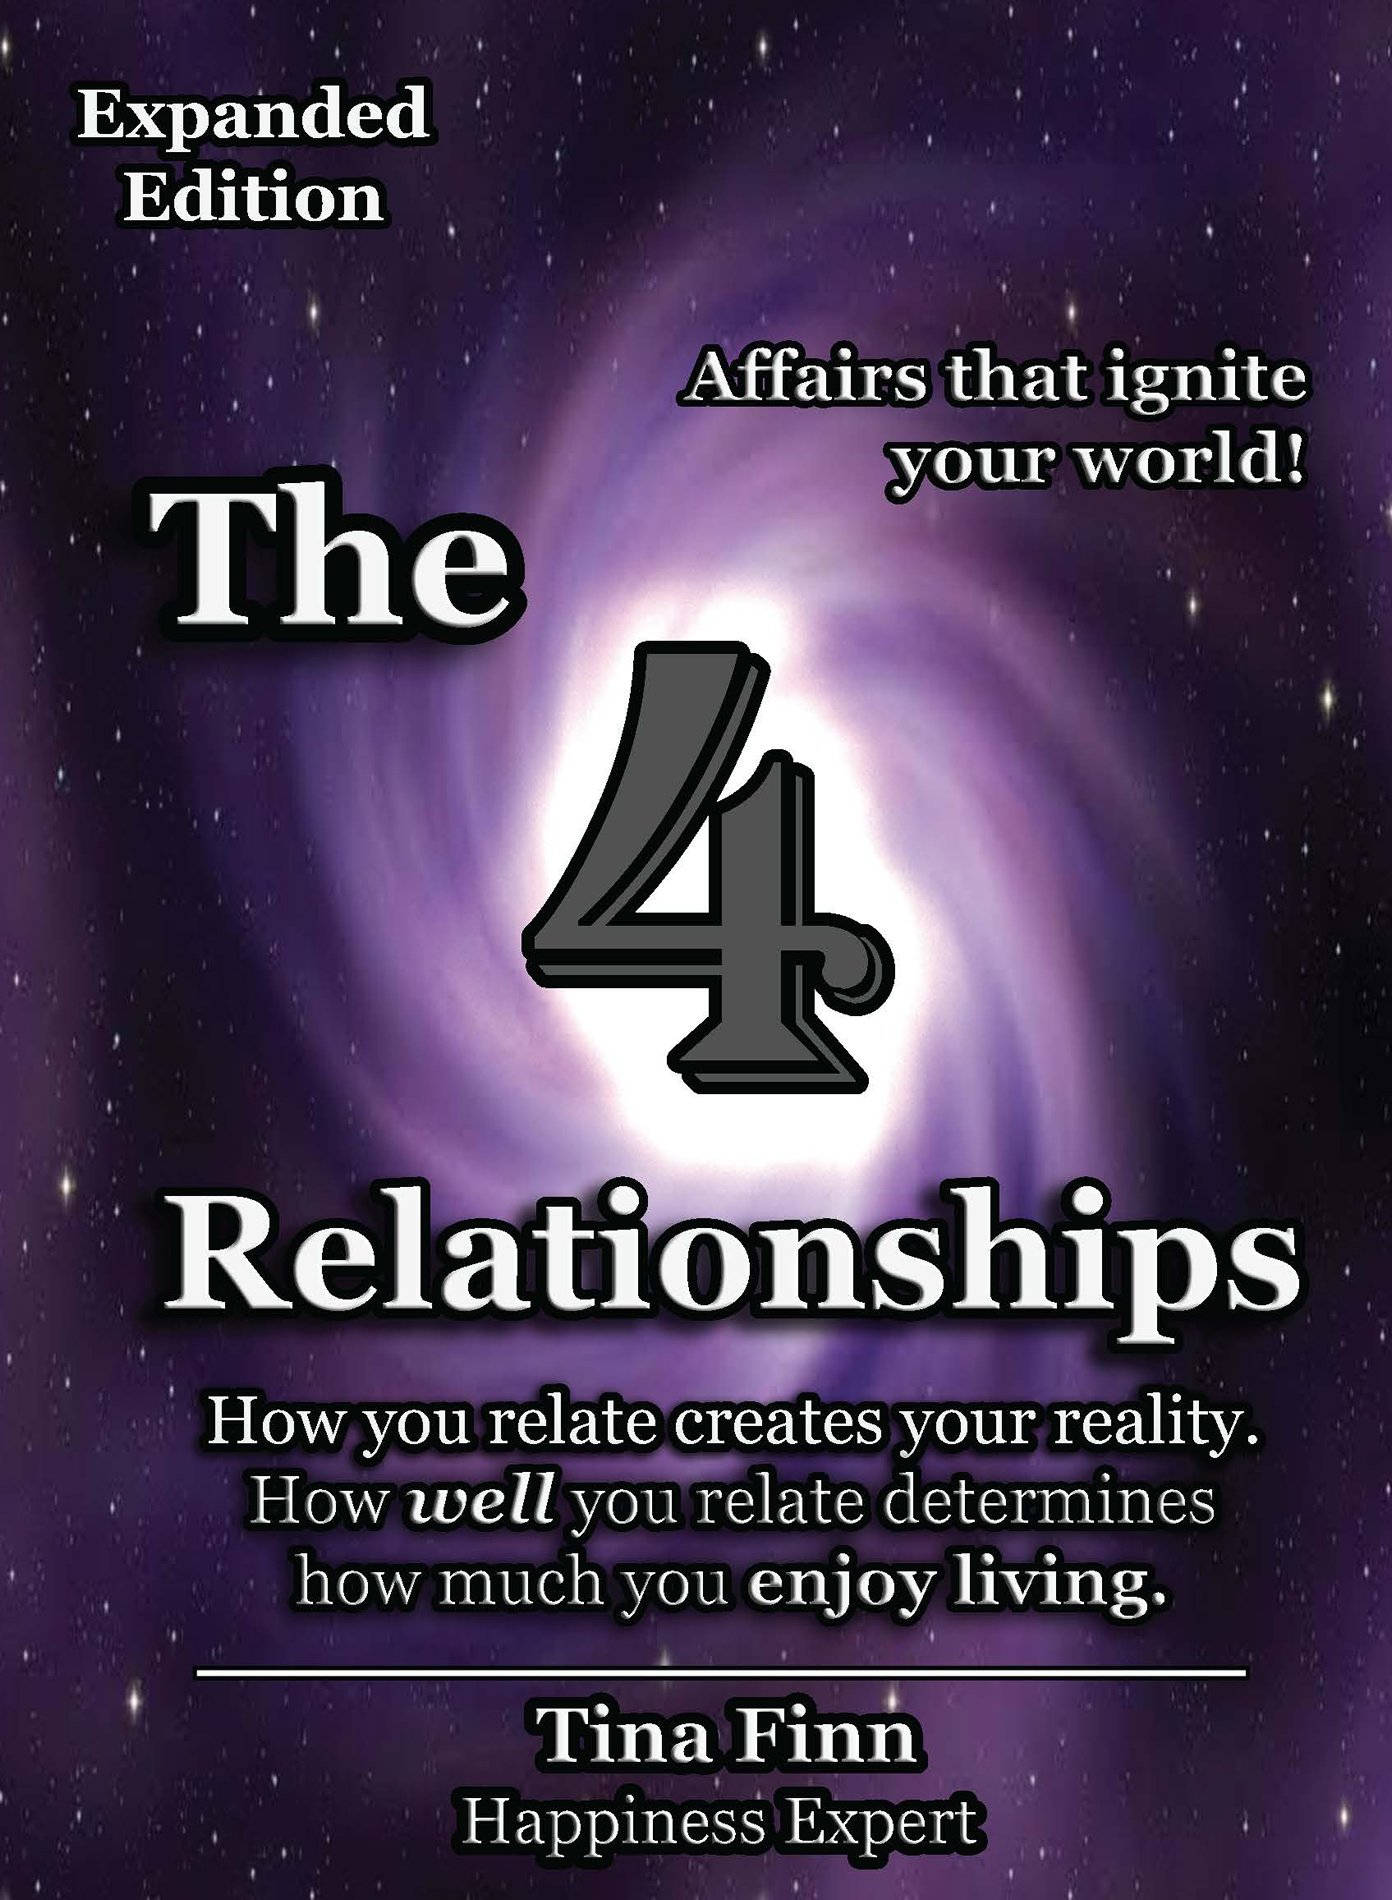 The 4 Relationships Expanded Edition pdf